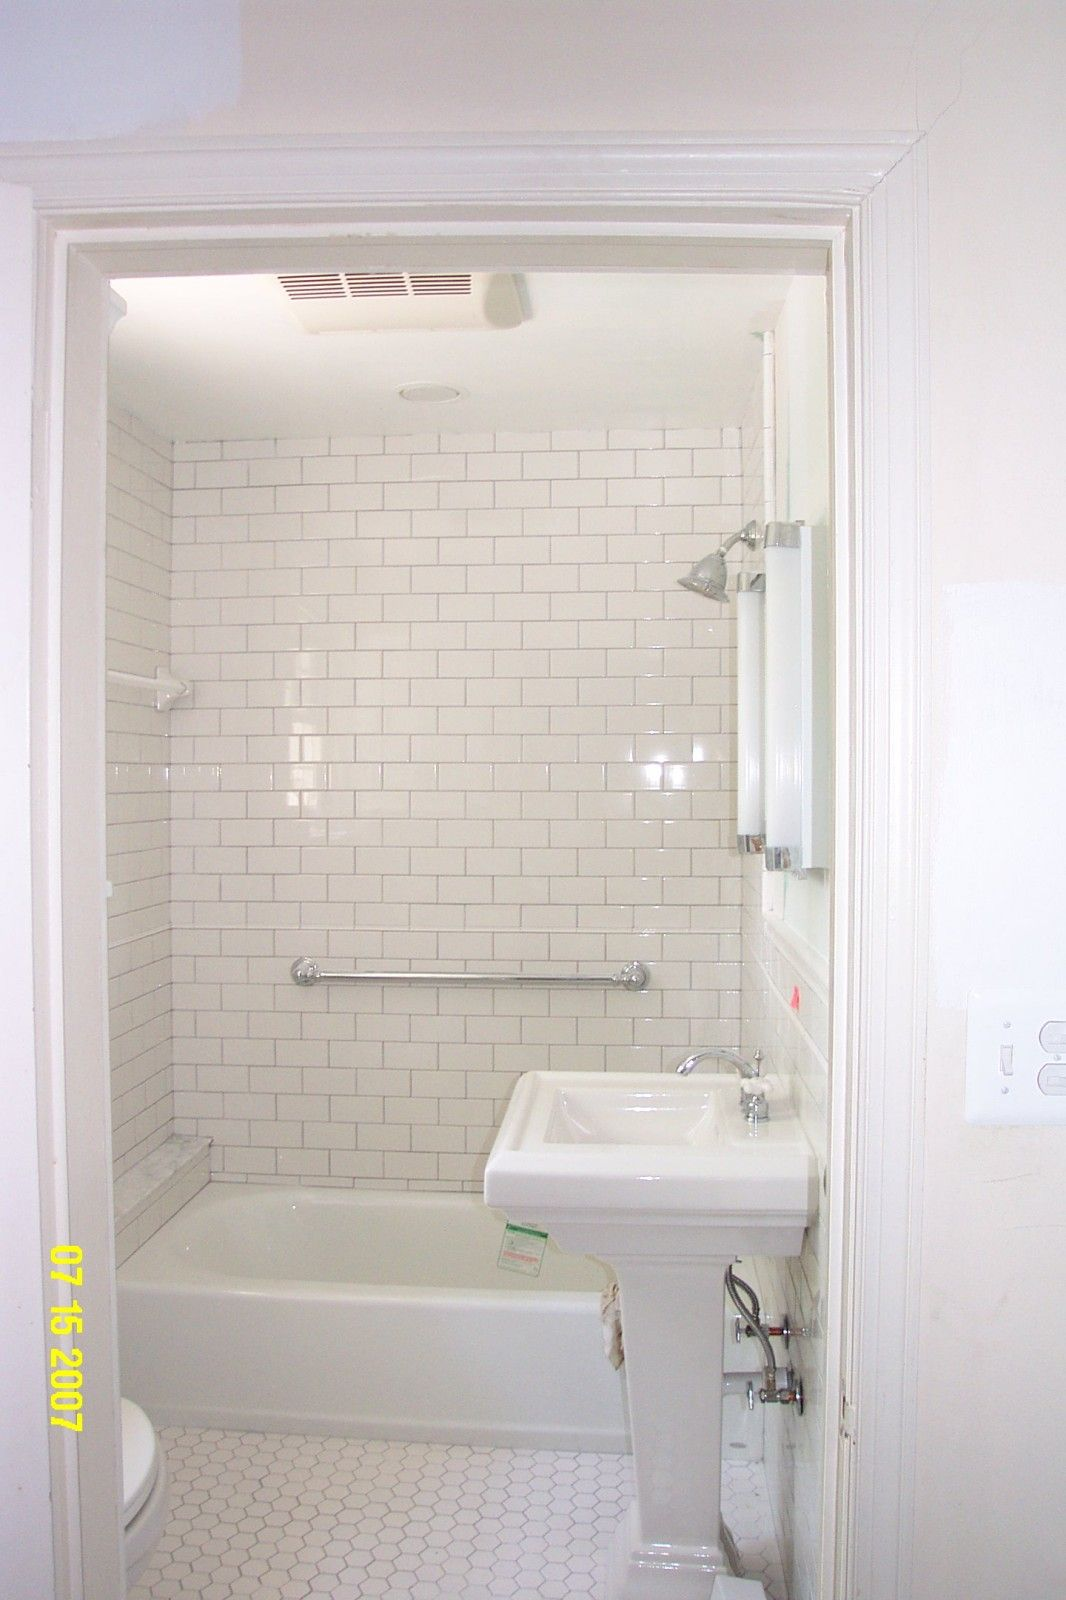 Image Of Subway Tile Bathroom Ideas White Patterned Bathroom Tiles Bathroom Tile Designs Subway Tiles Bathroom